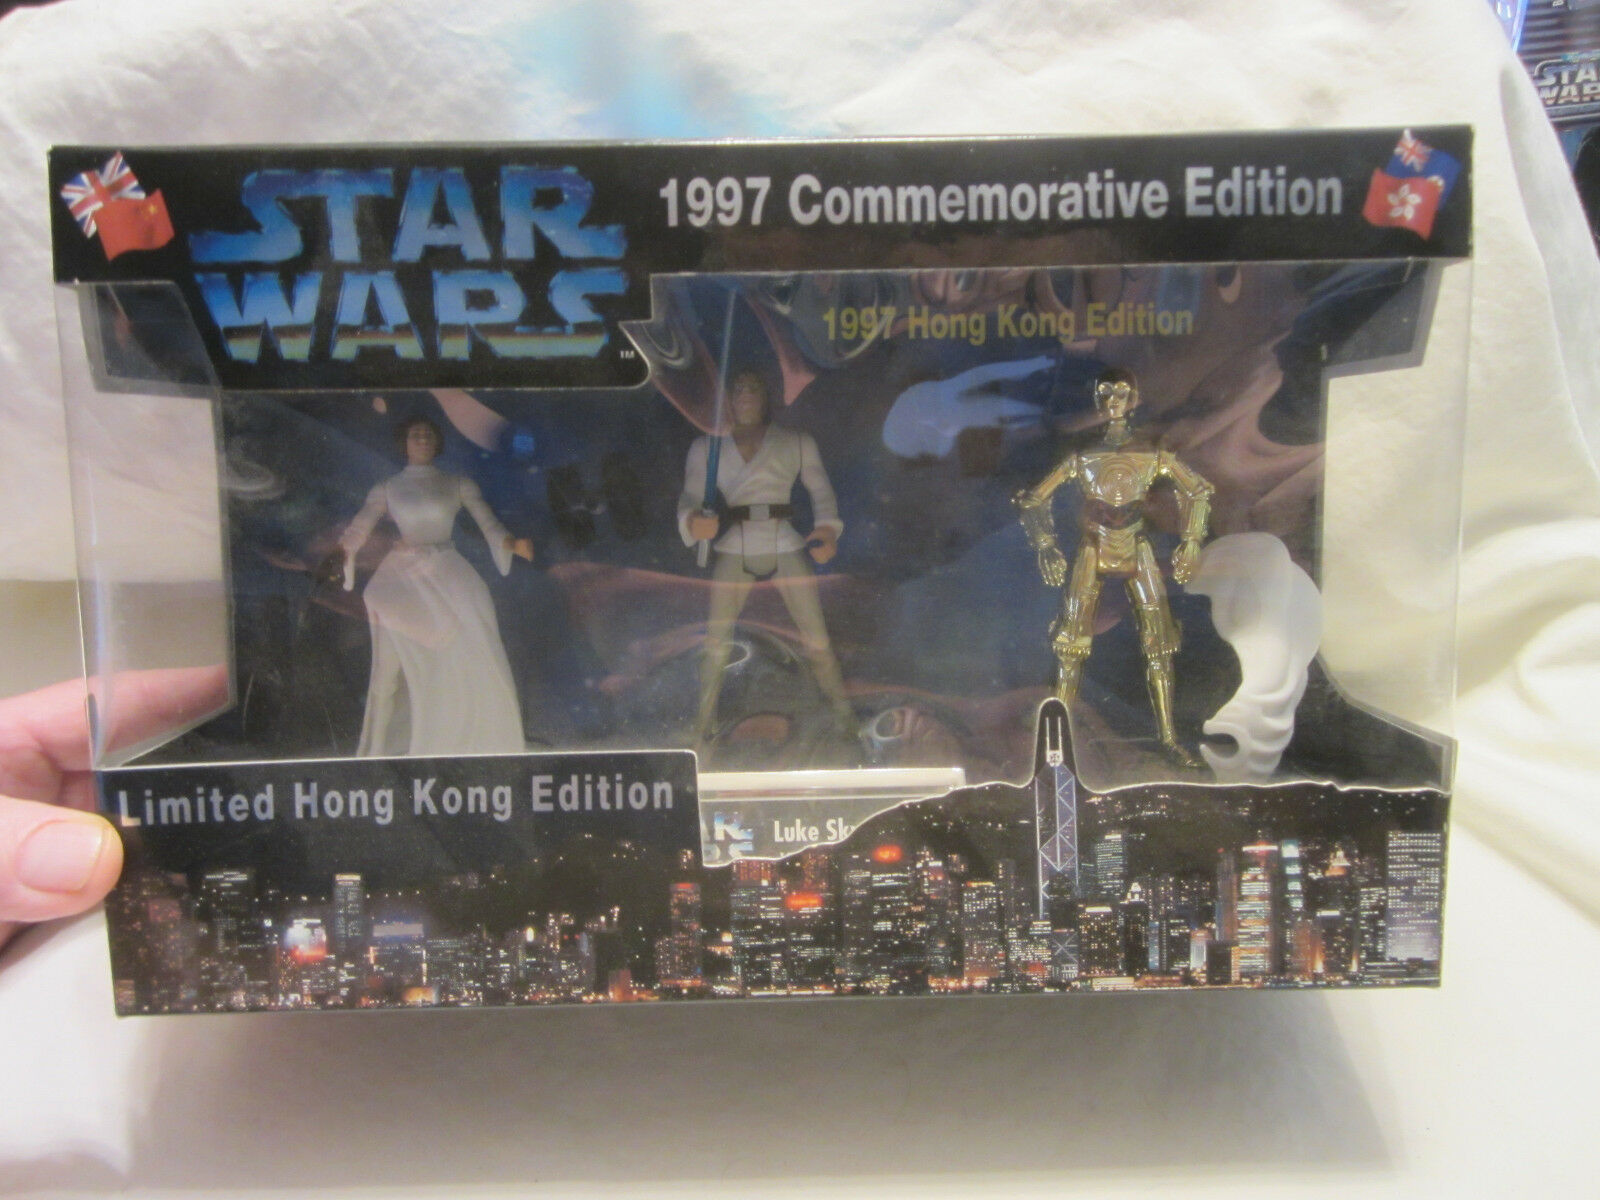 Star Kenner Wars Kenner Star 1997 Commemorative Limited Hong Kong Edition e331ae